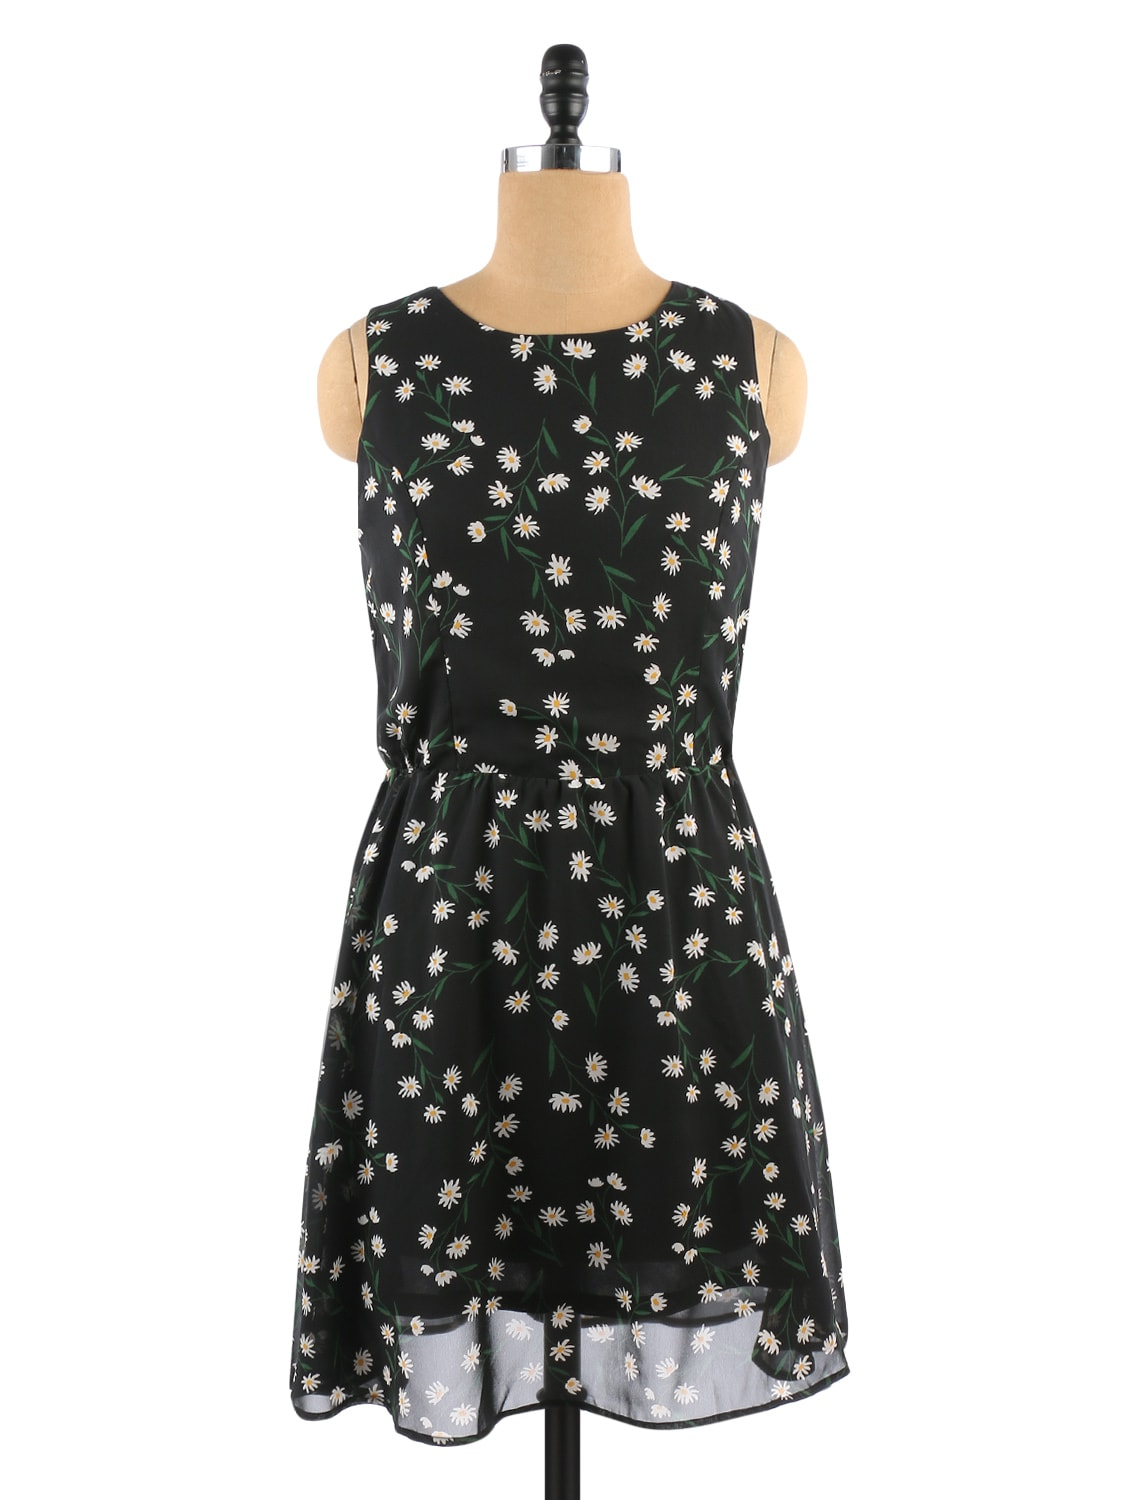 Black Floral Printed Sleeveless Polyester Dress - By